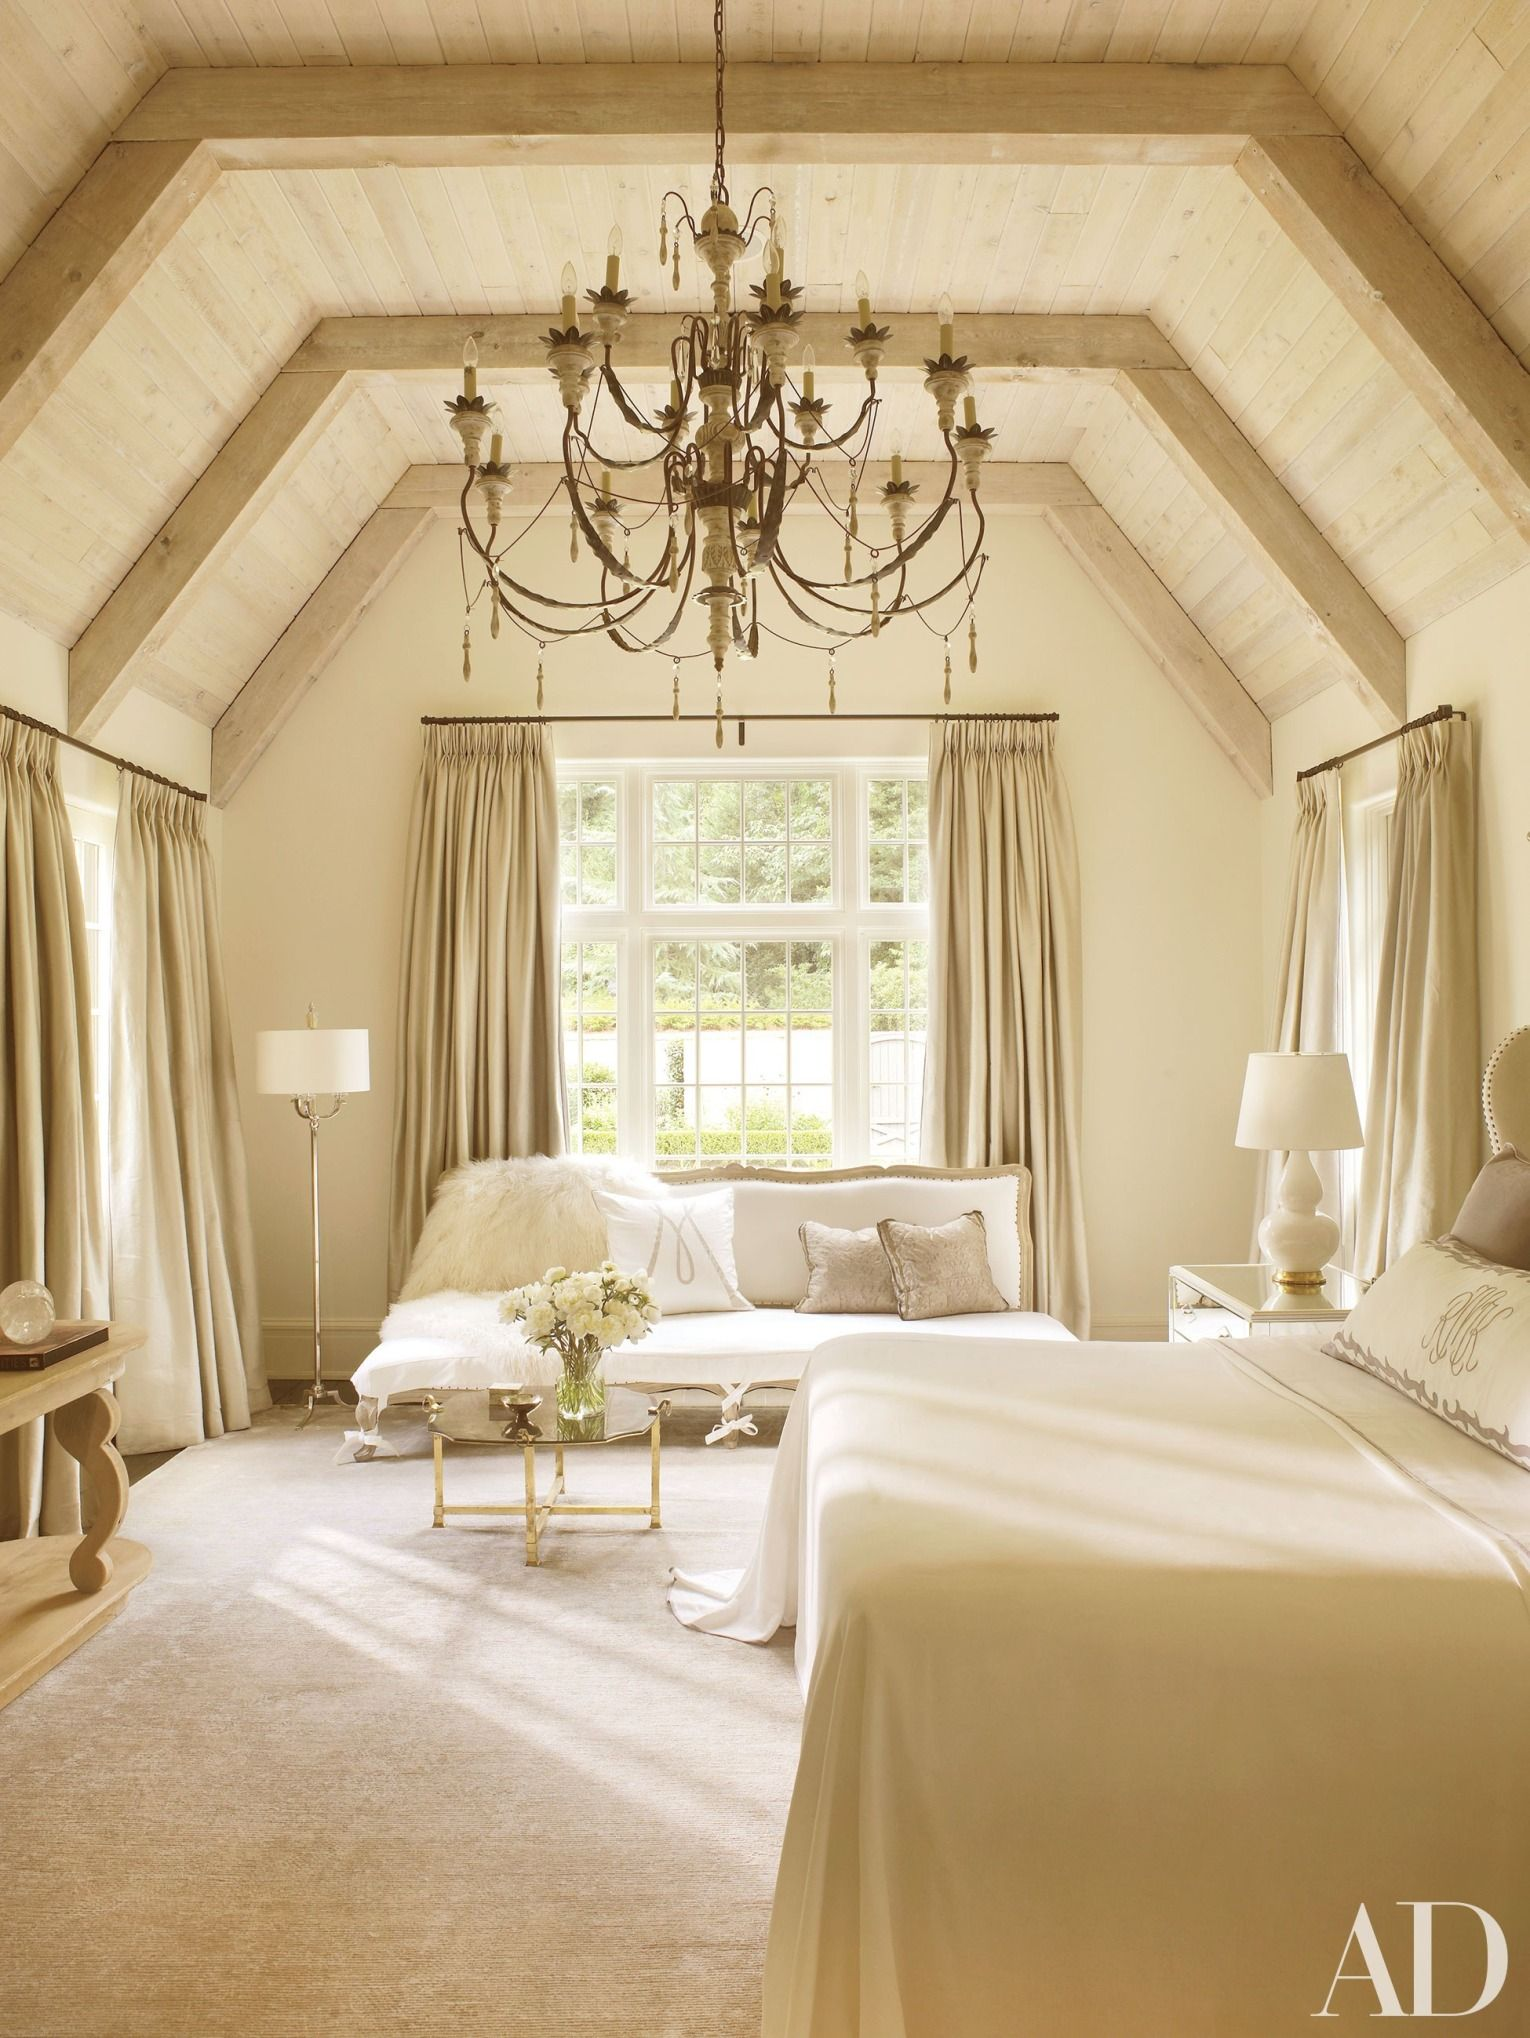 Best Vaulted Ceilings That Take Any Room To New Heights In 2020 400 x 300